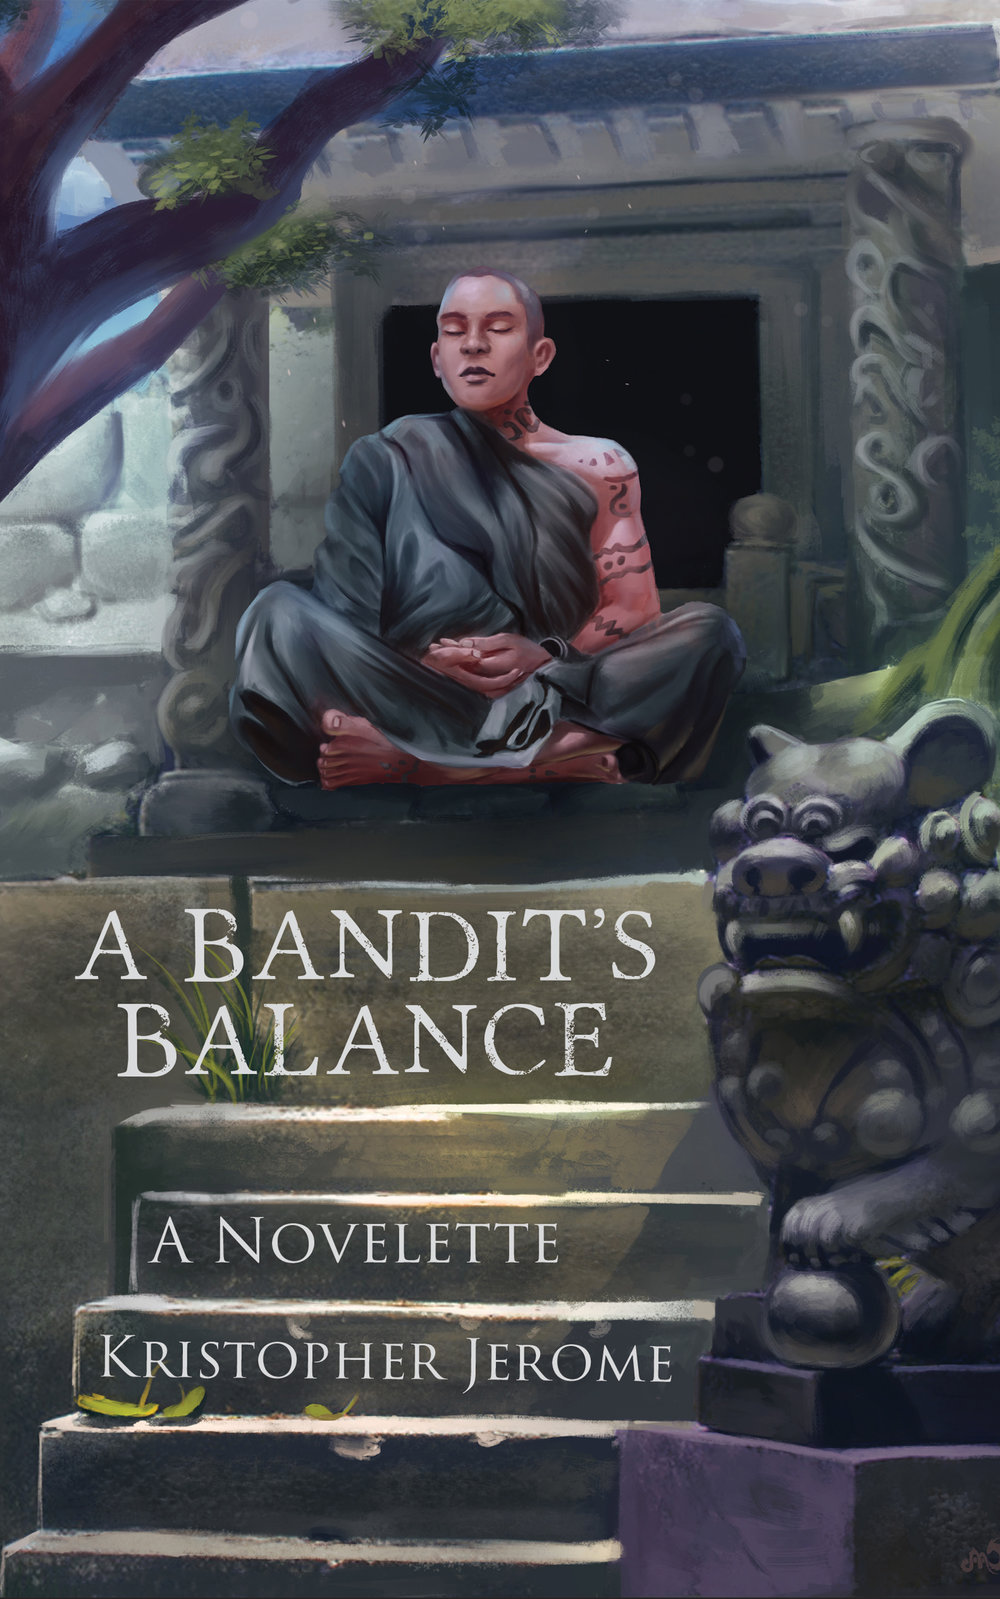 A BANDIT'S BALANCE by Kristopher Jerome